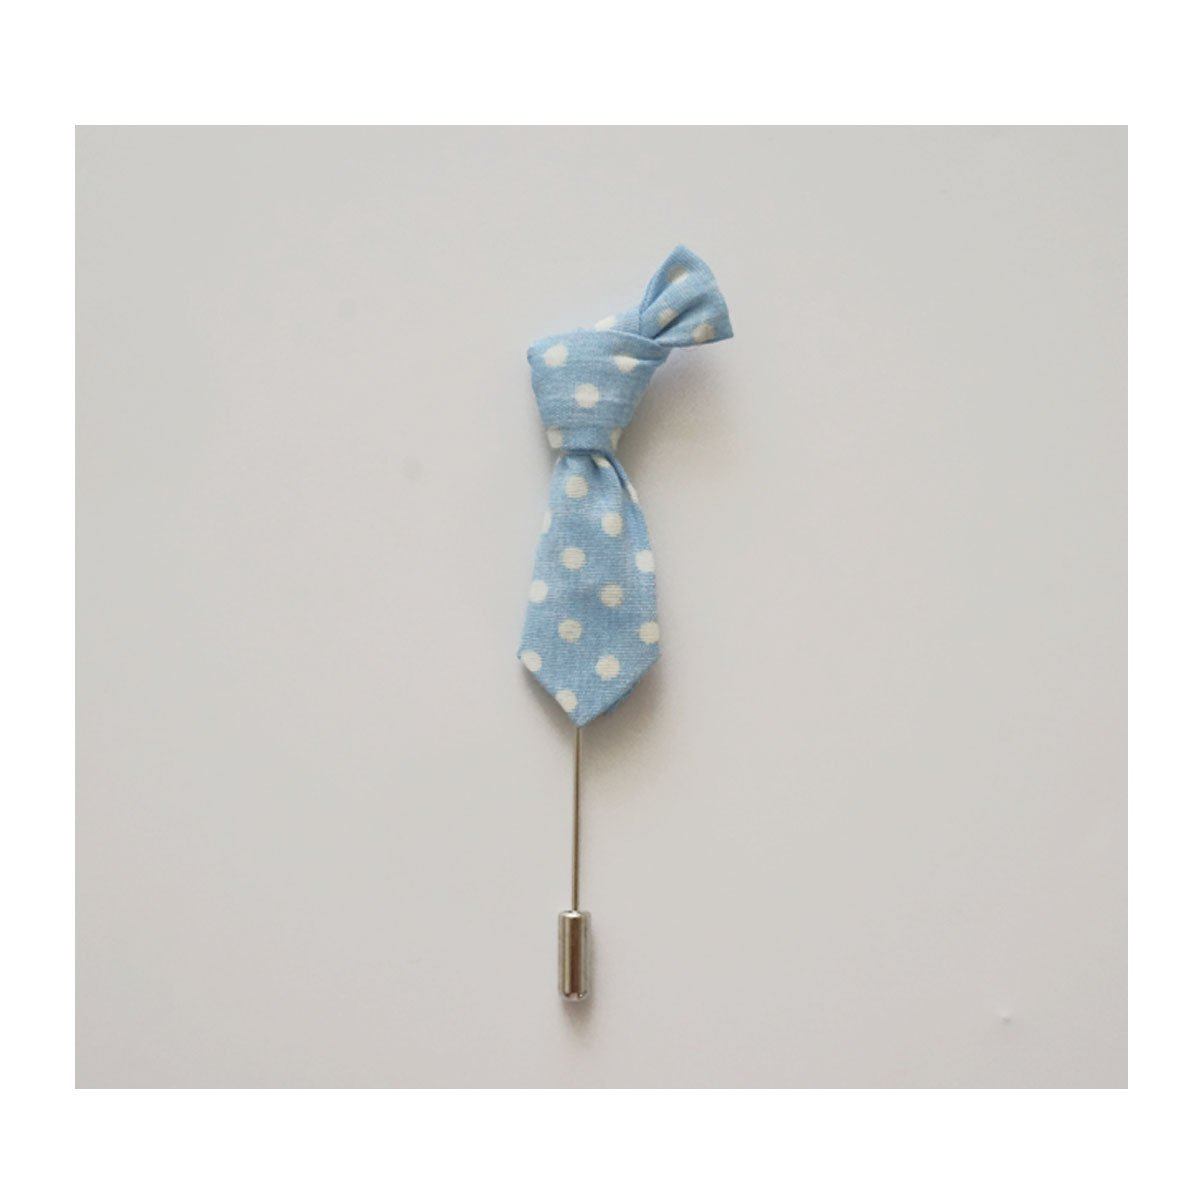 Sunny Home Men's Polka Dot Handmade Boutonniere Lapel Stick Pin for Suit